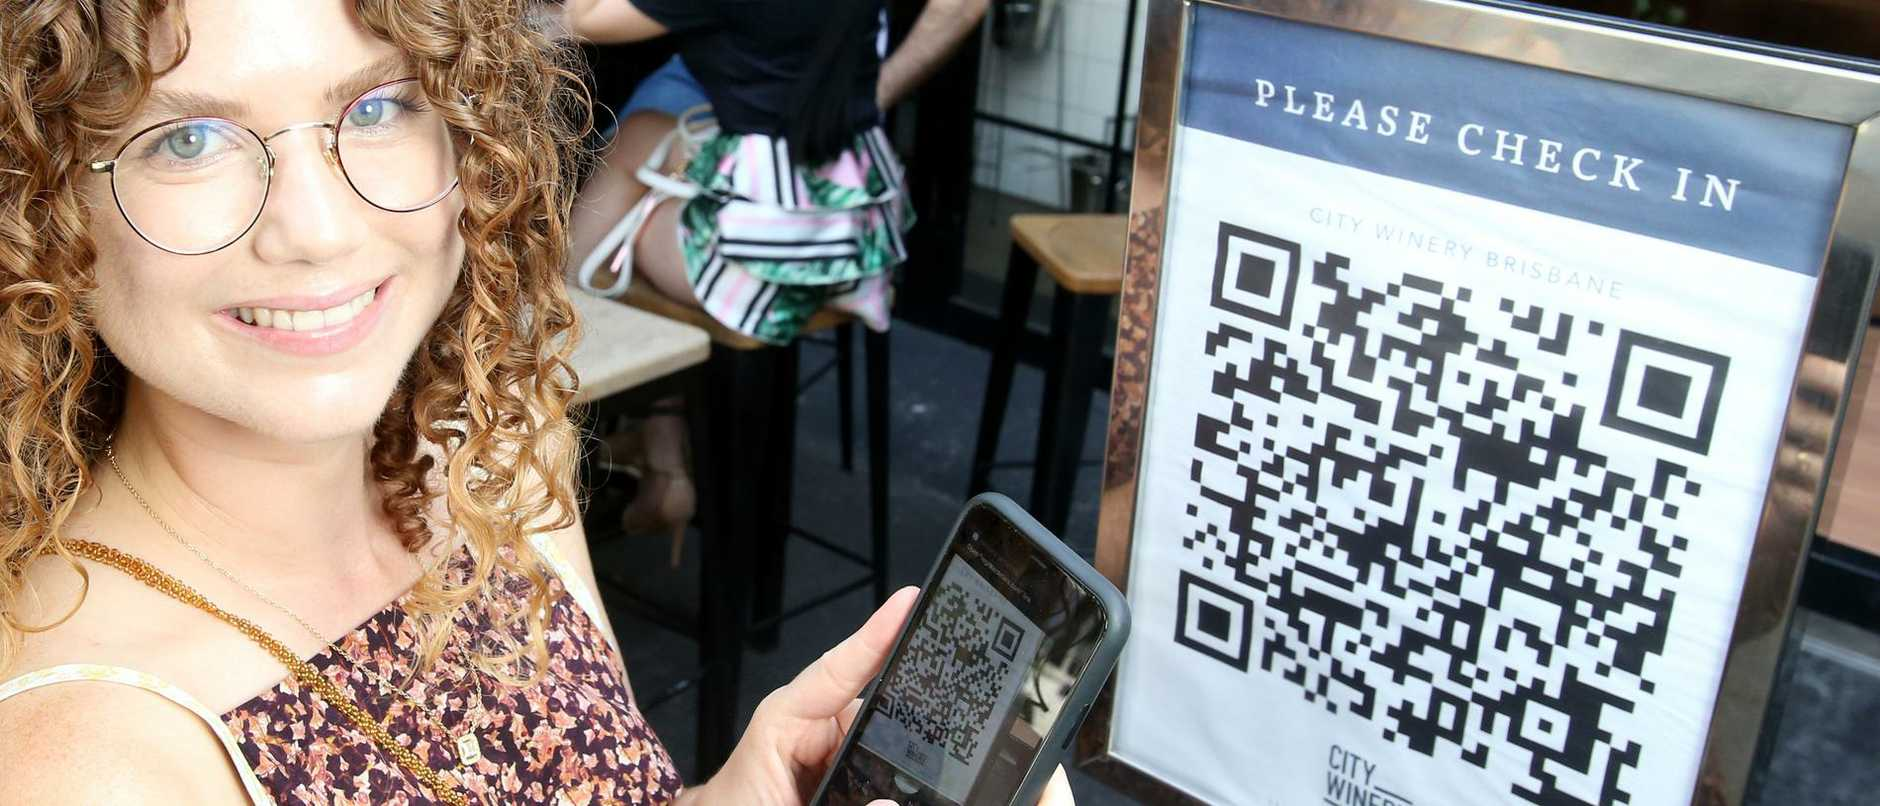 The NSW government says QR codes will be done away with in the majority of public places once the worst of the pandemic is over.